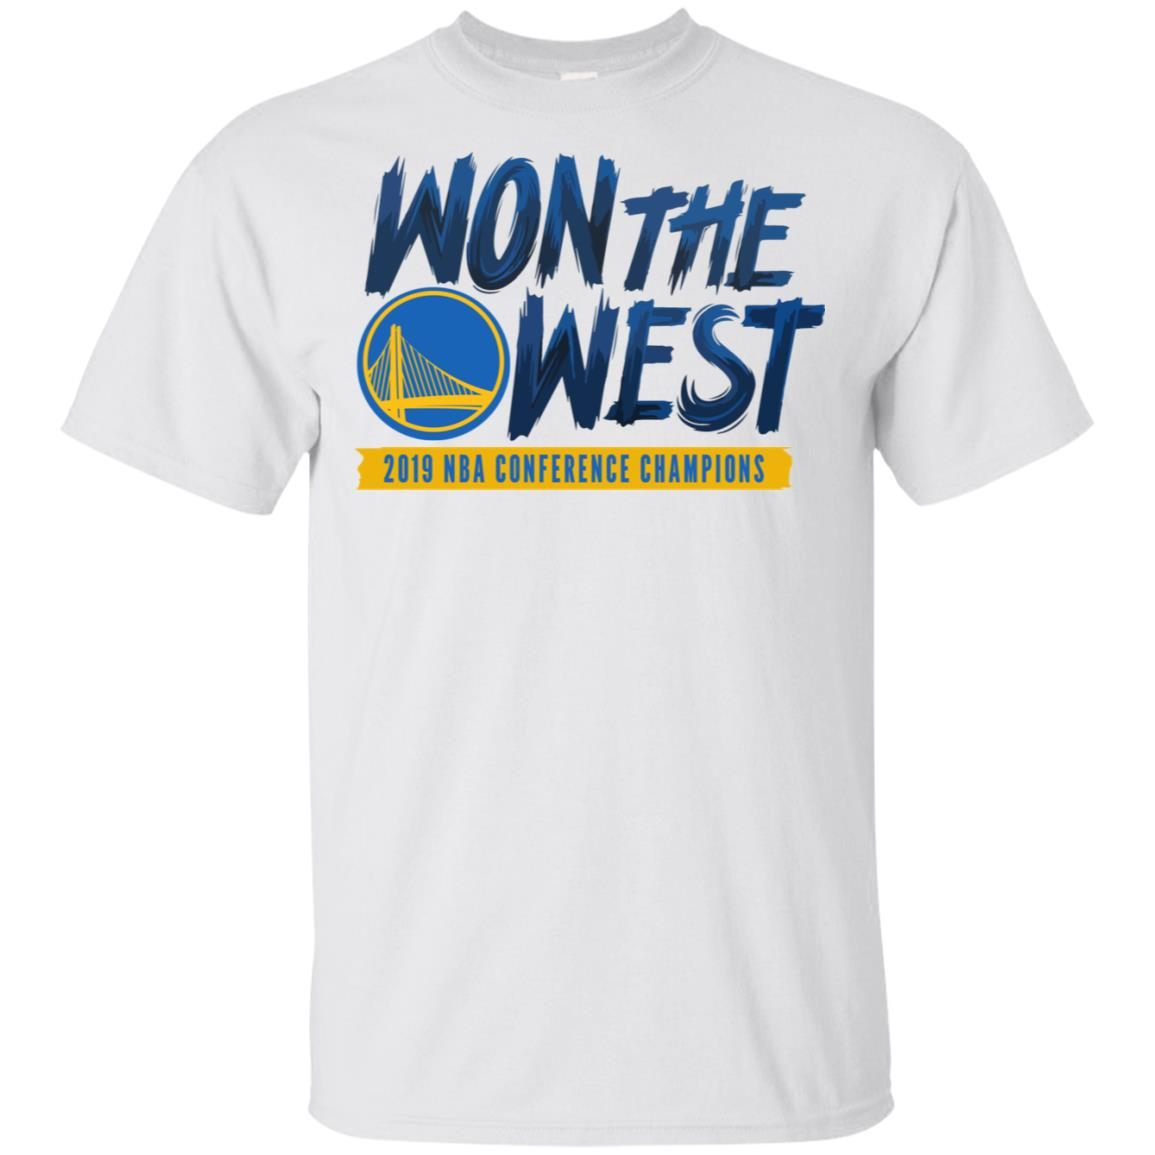 Warriors Won the west